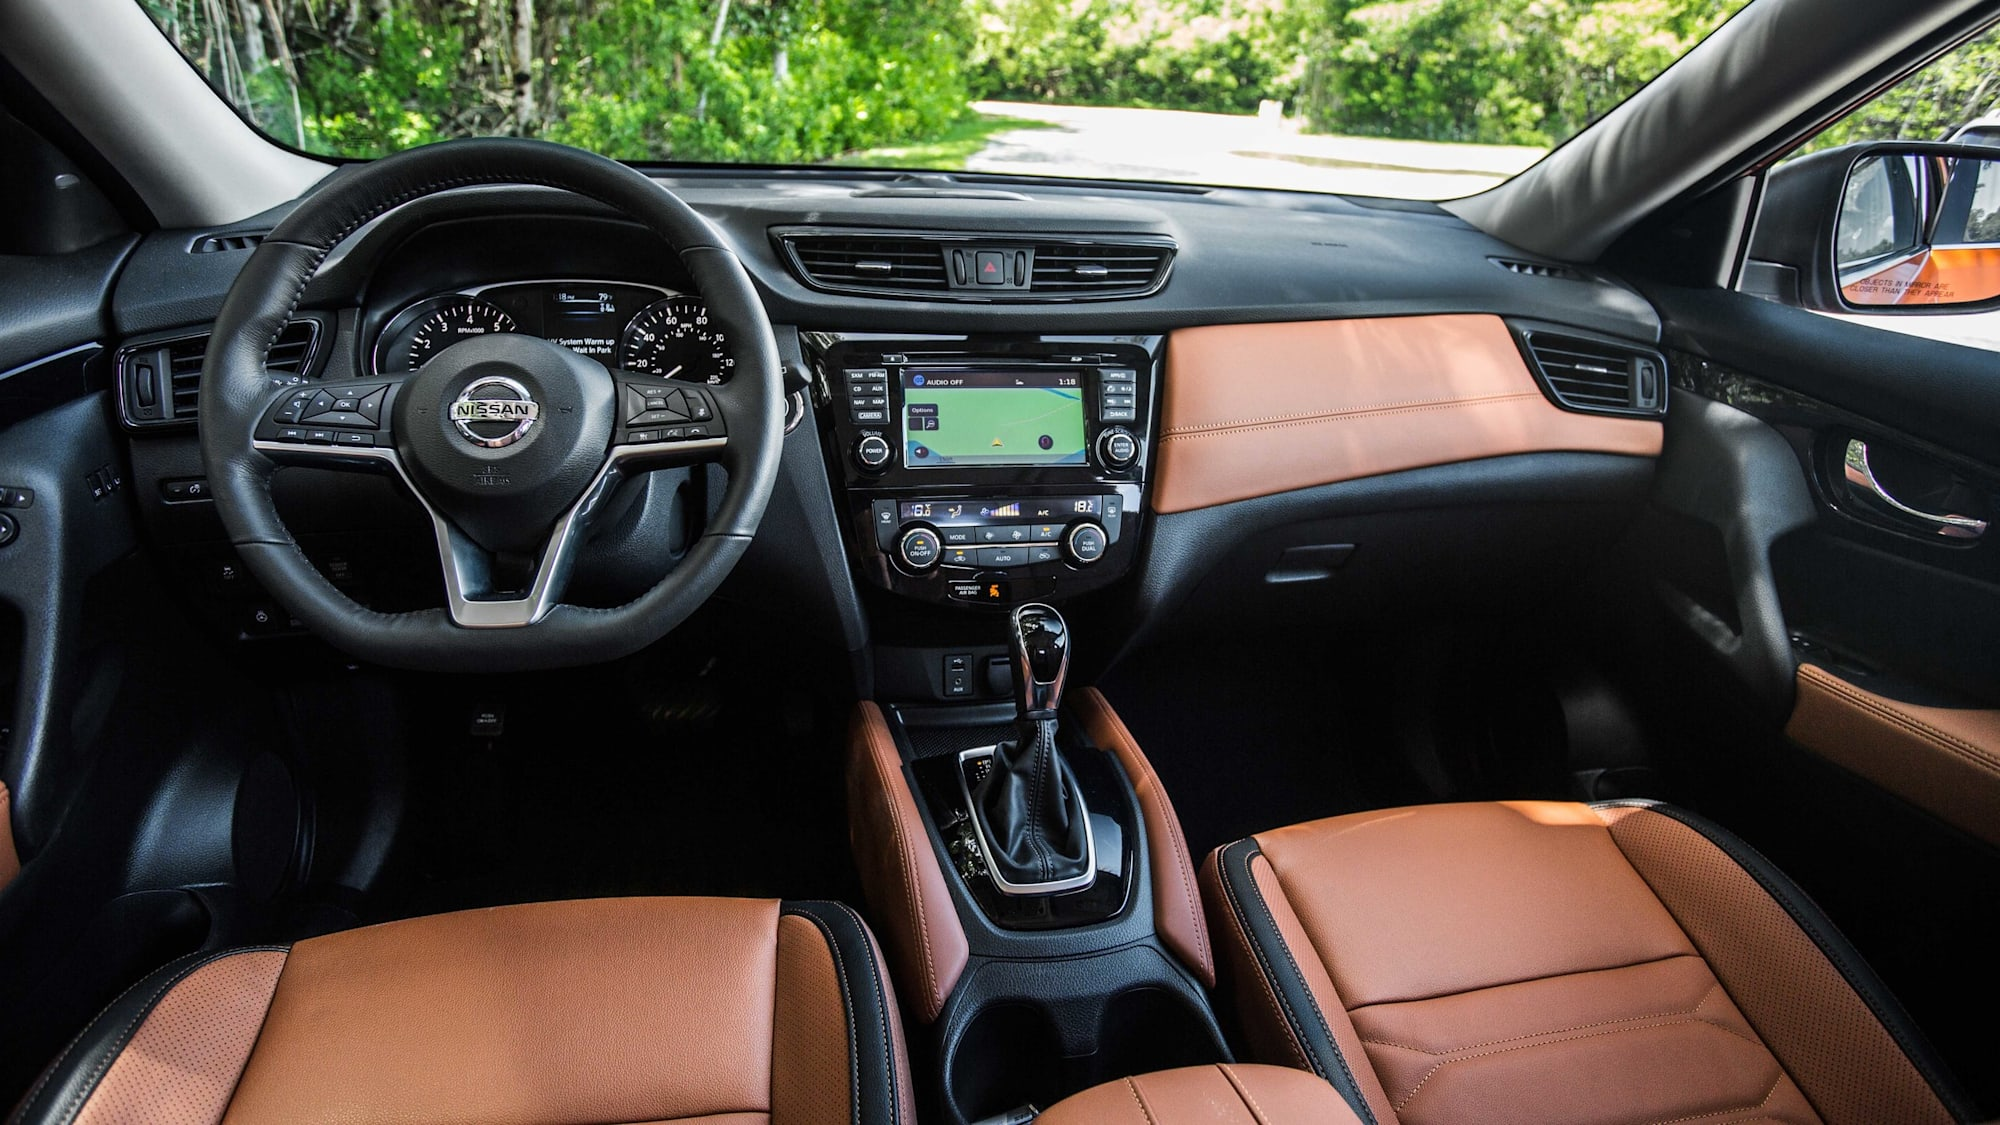 2019 Nissan Rogue: News, Upgrades, Specs, Price >> 2019 Nissan Rogue Reviews Price Specs Features And